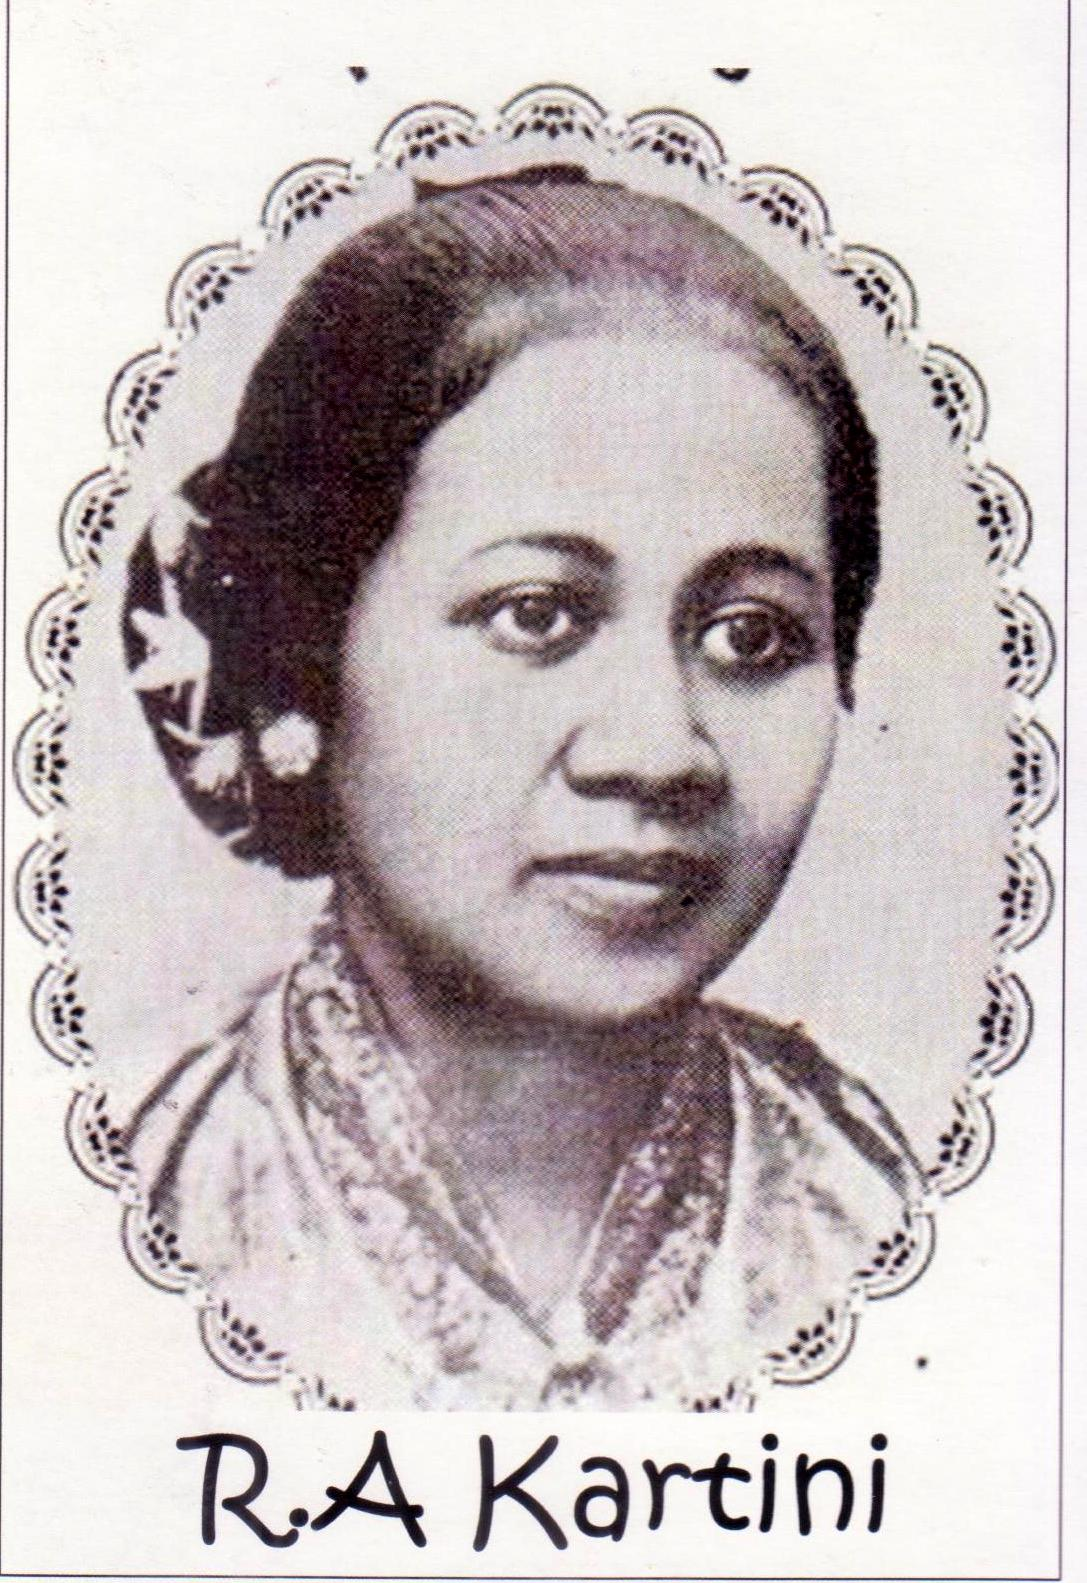 Kartini, pioneer in the area of women's rights for Indonesians